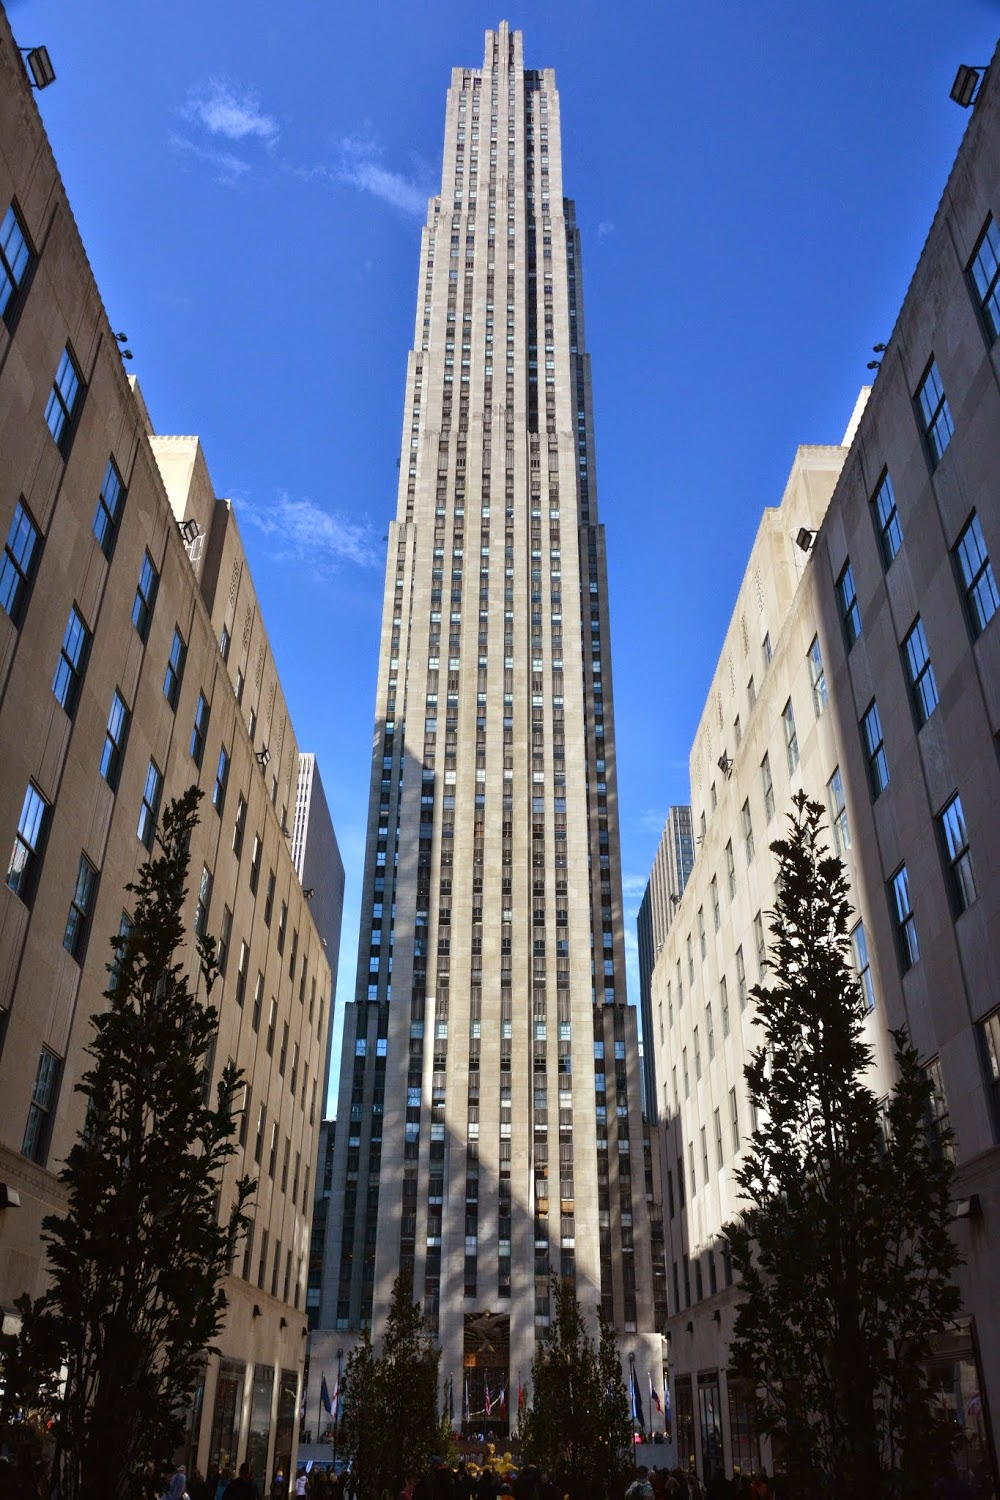 Reasons to visit New York - Rockefeller Center